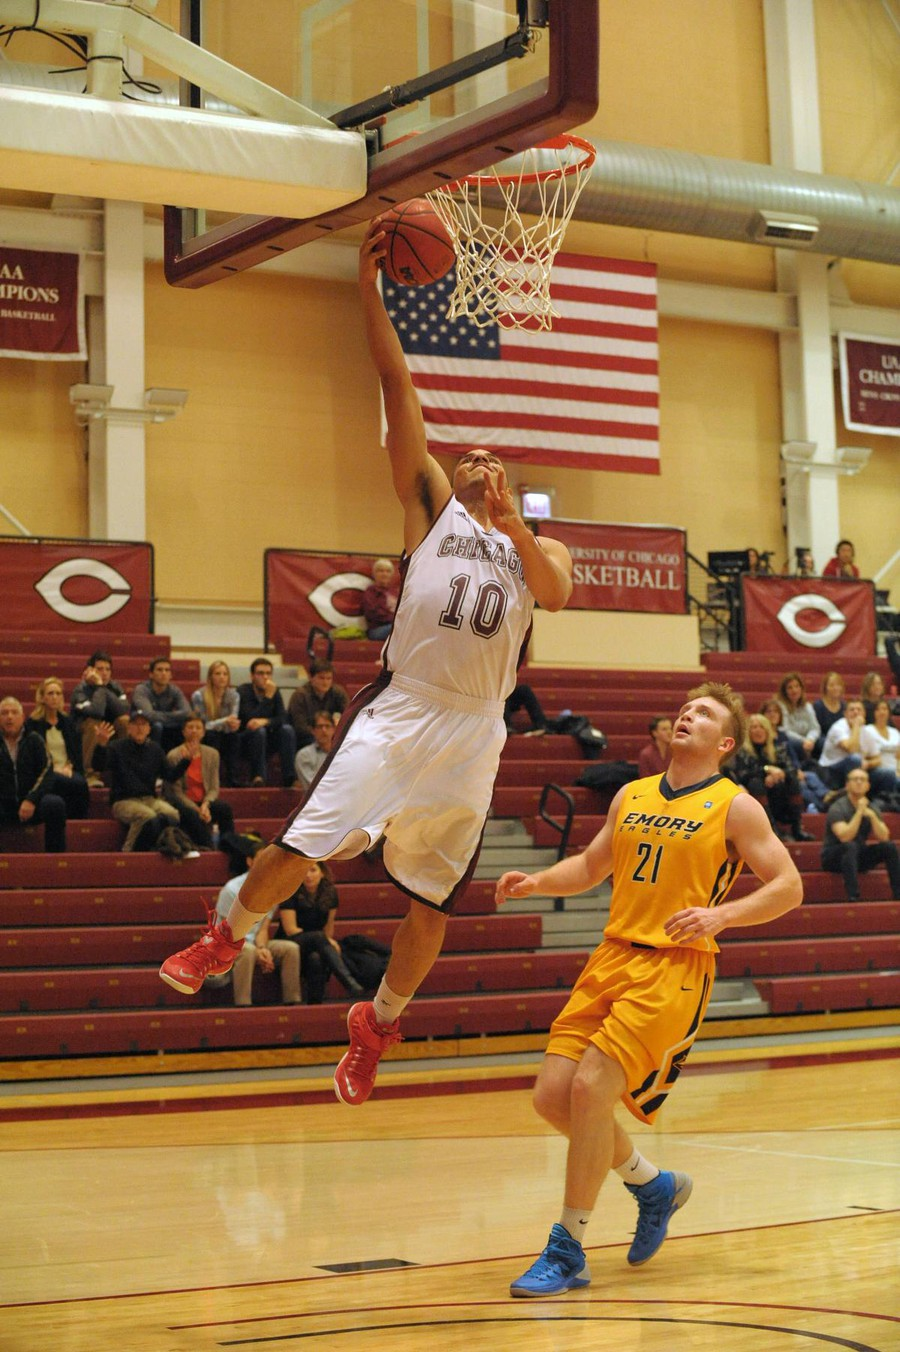 Fourth-year Waller Perez goes in for an impressive high-flying layup.